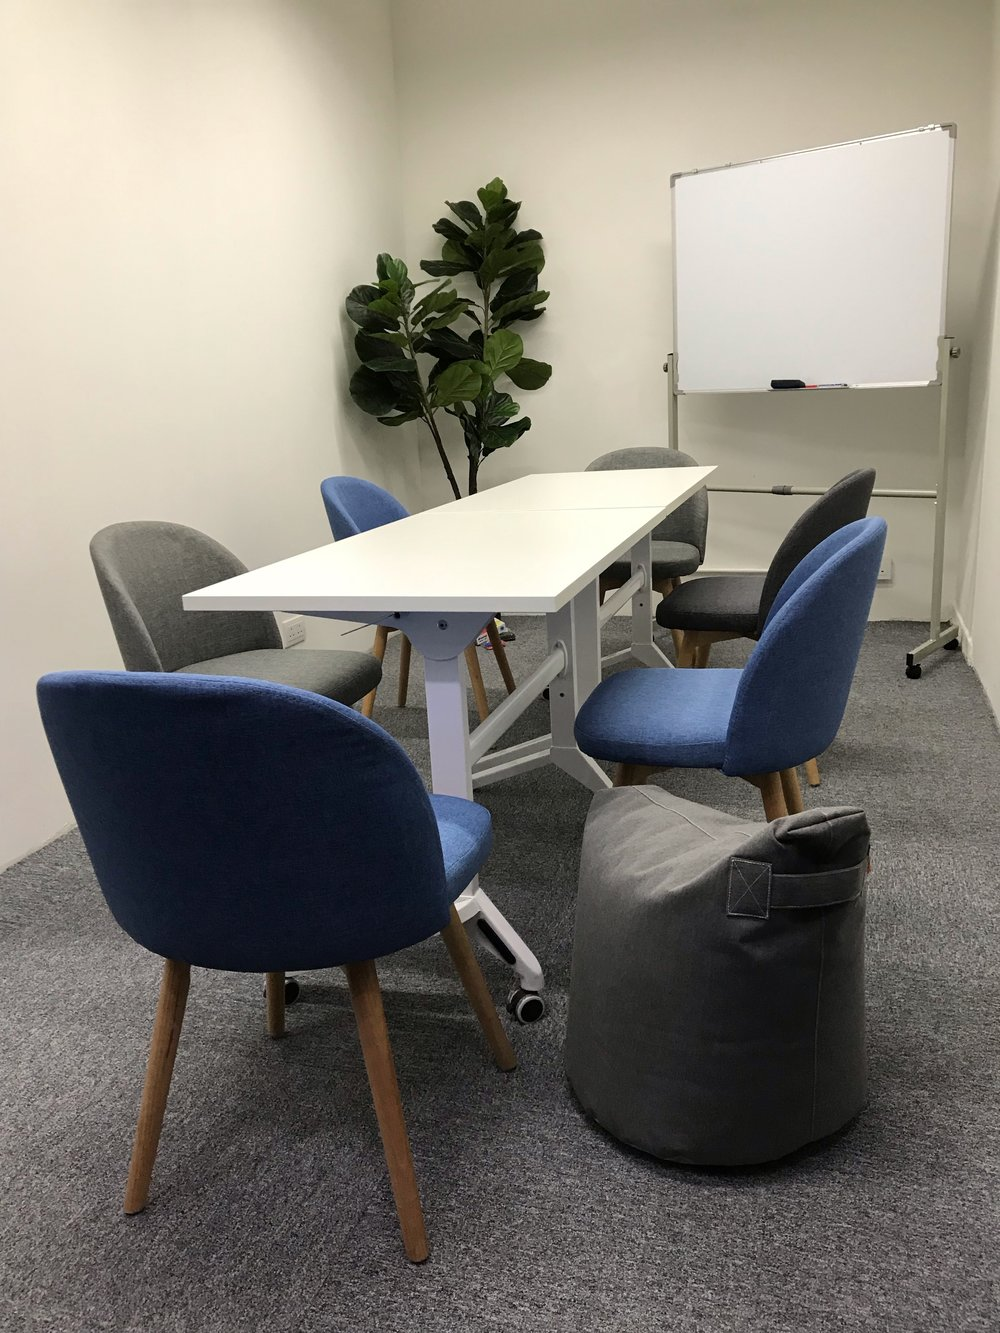 Discussion, study room for 3-6 pax